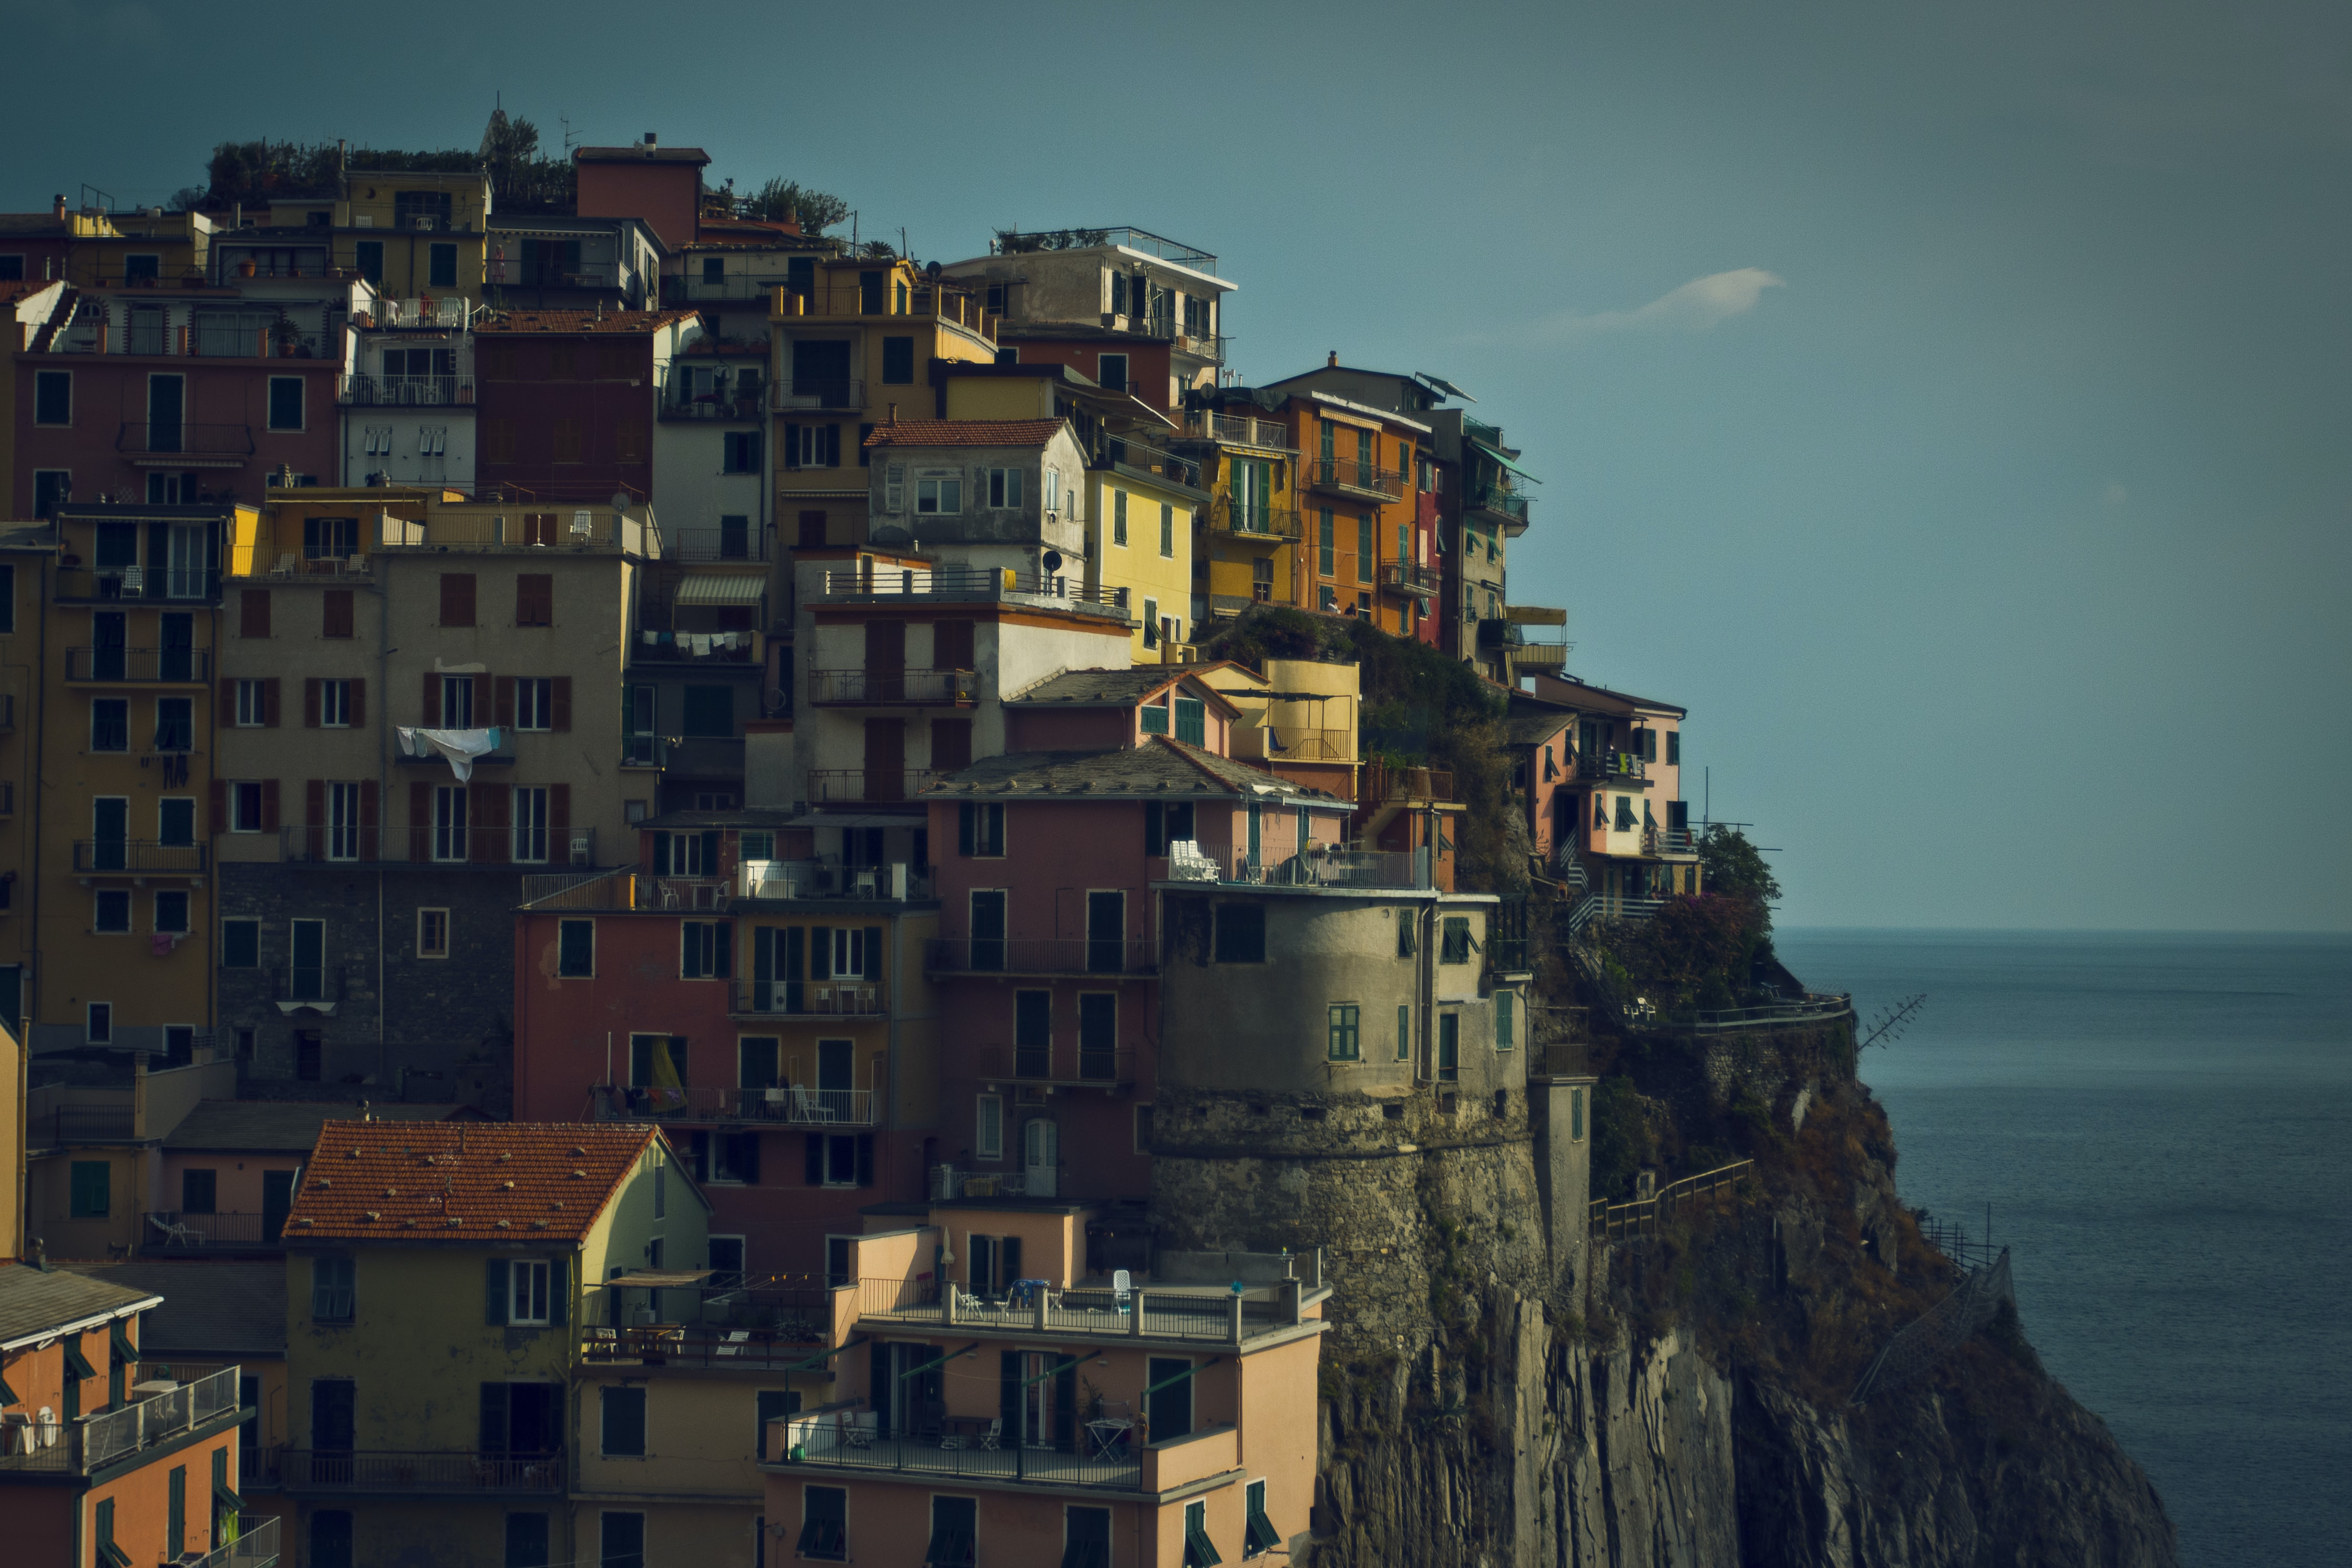 landscape photography of houses on mountain